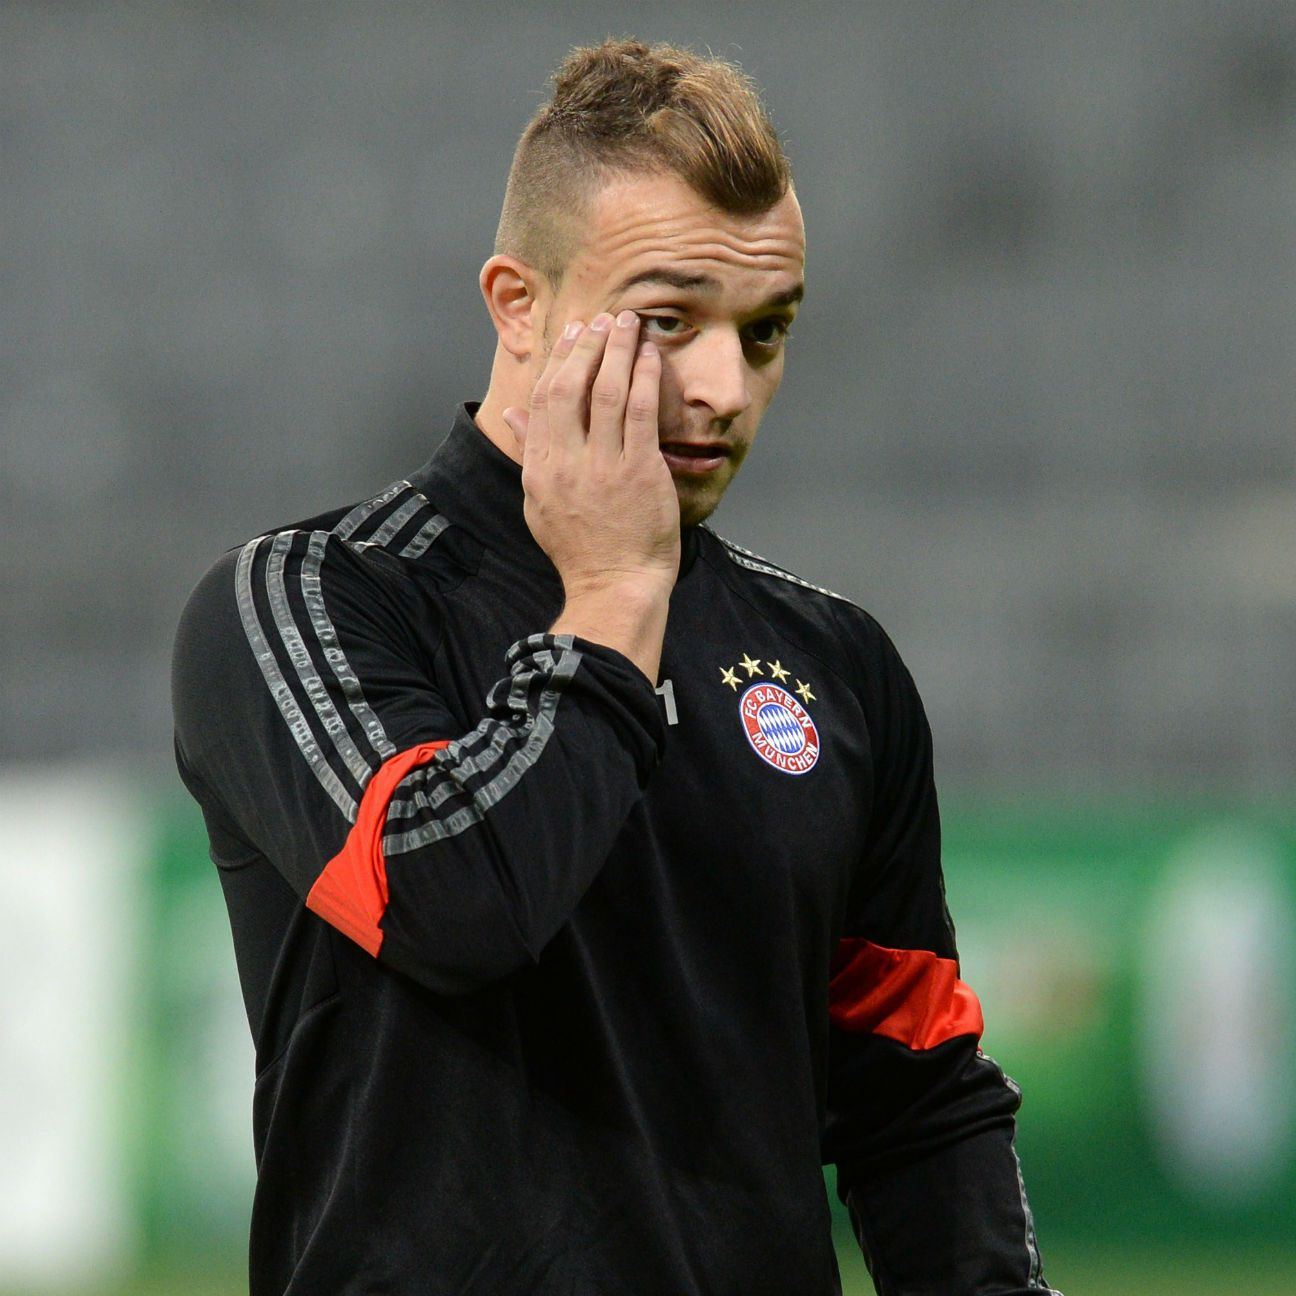 Most of Xherdan Shaqiri's time at Bayern was spent on the bench, and not on the field.